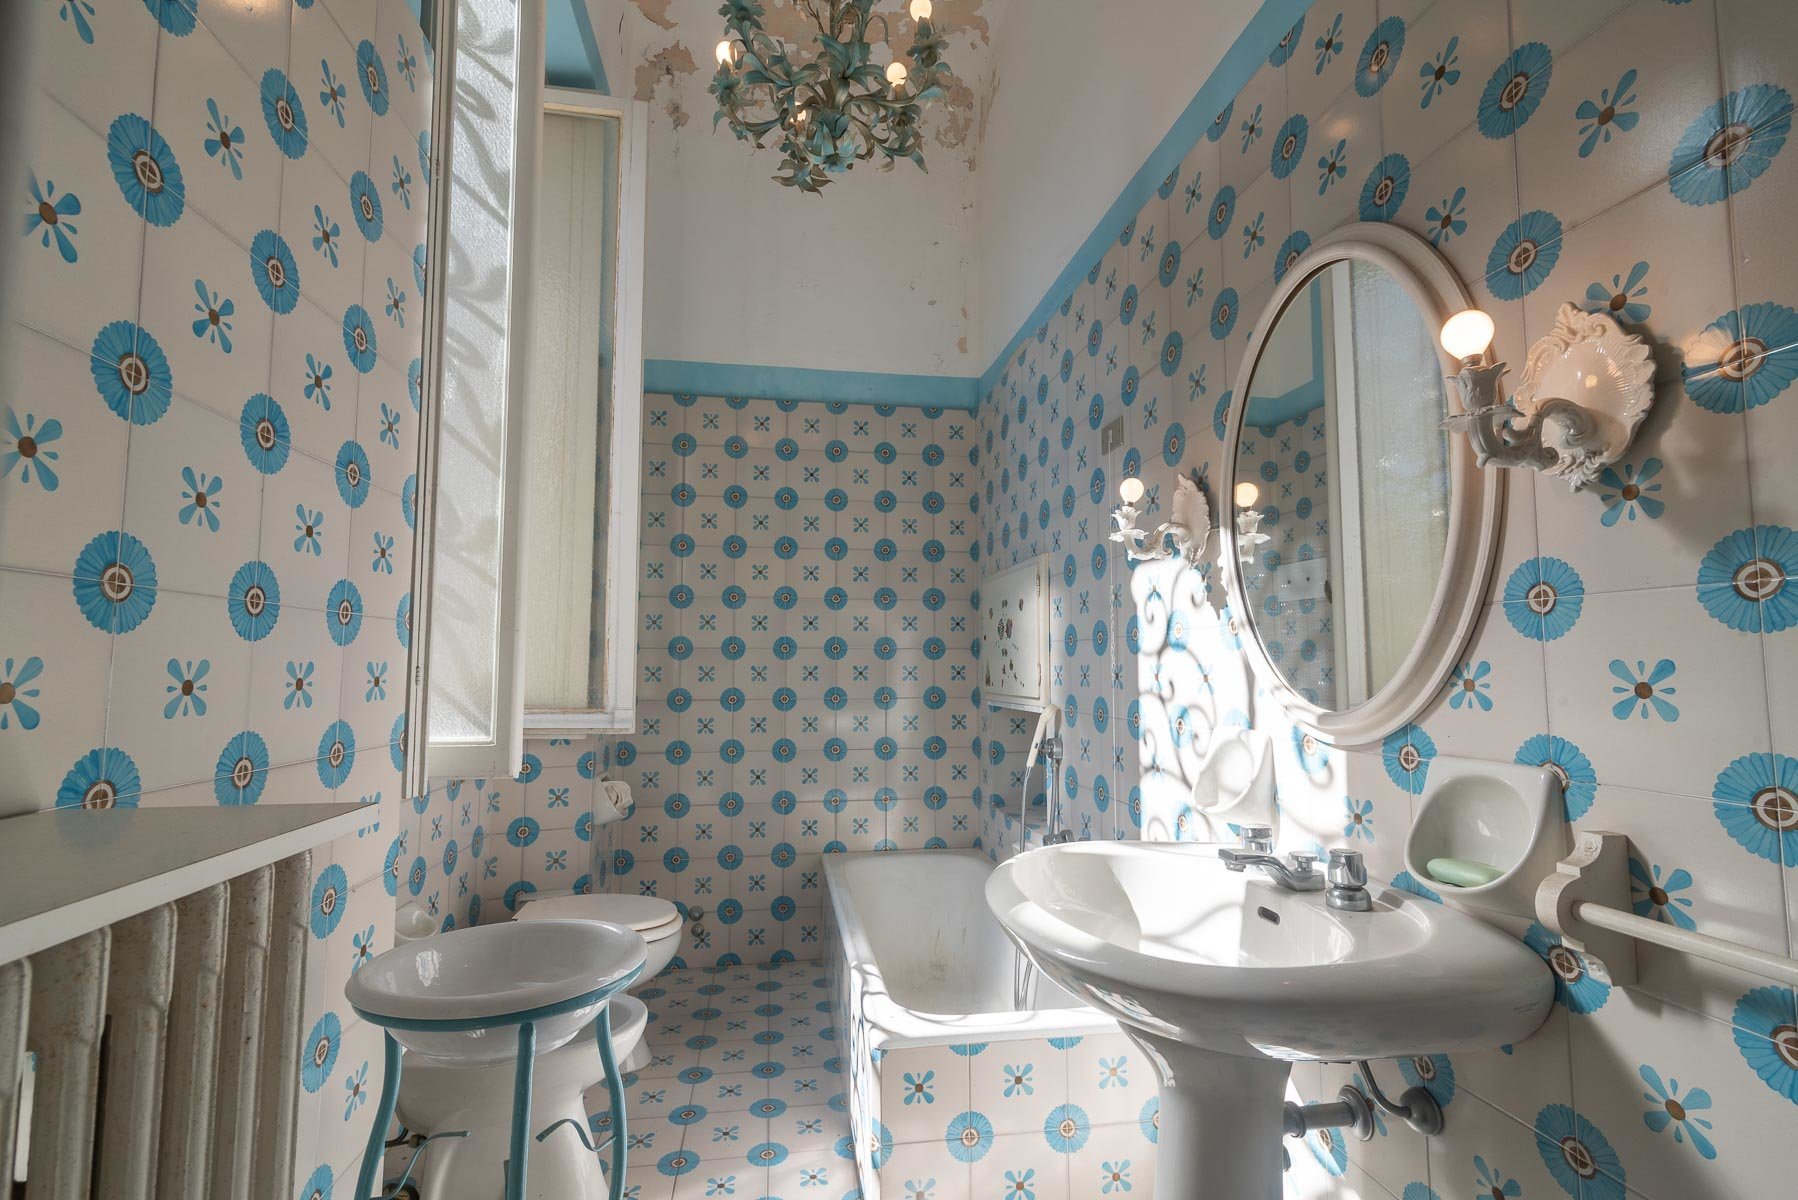 Liberty villa for sale in Stresa - bathroom